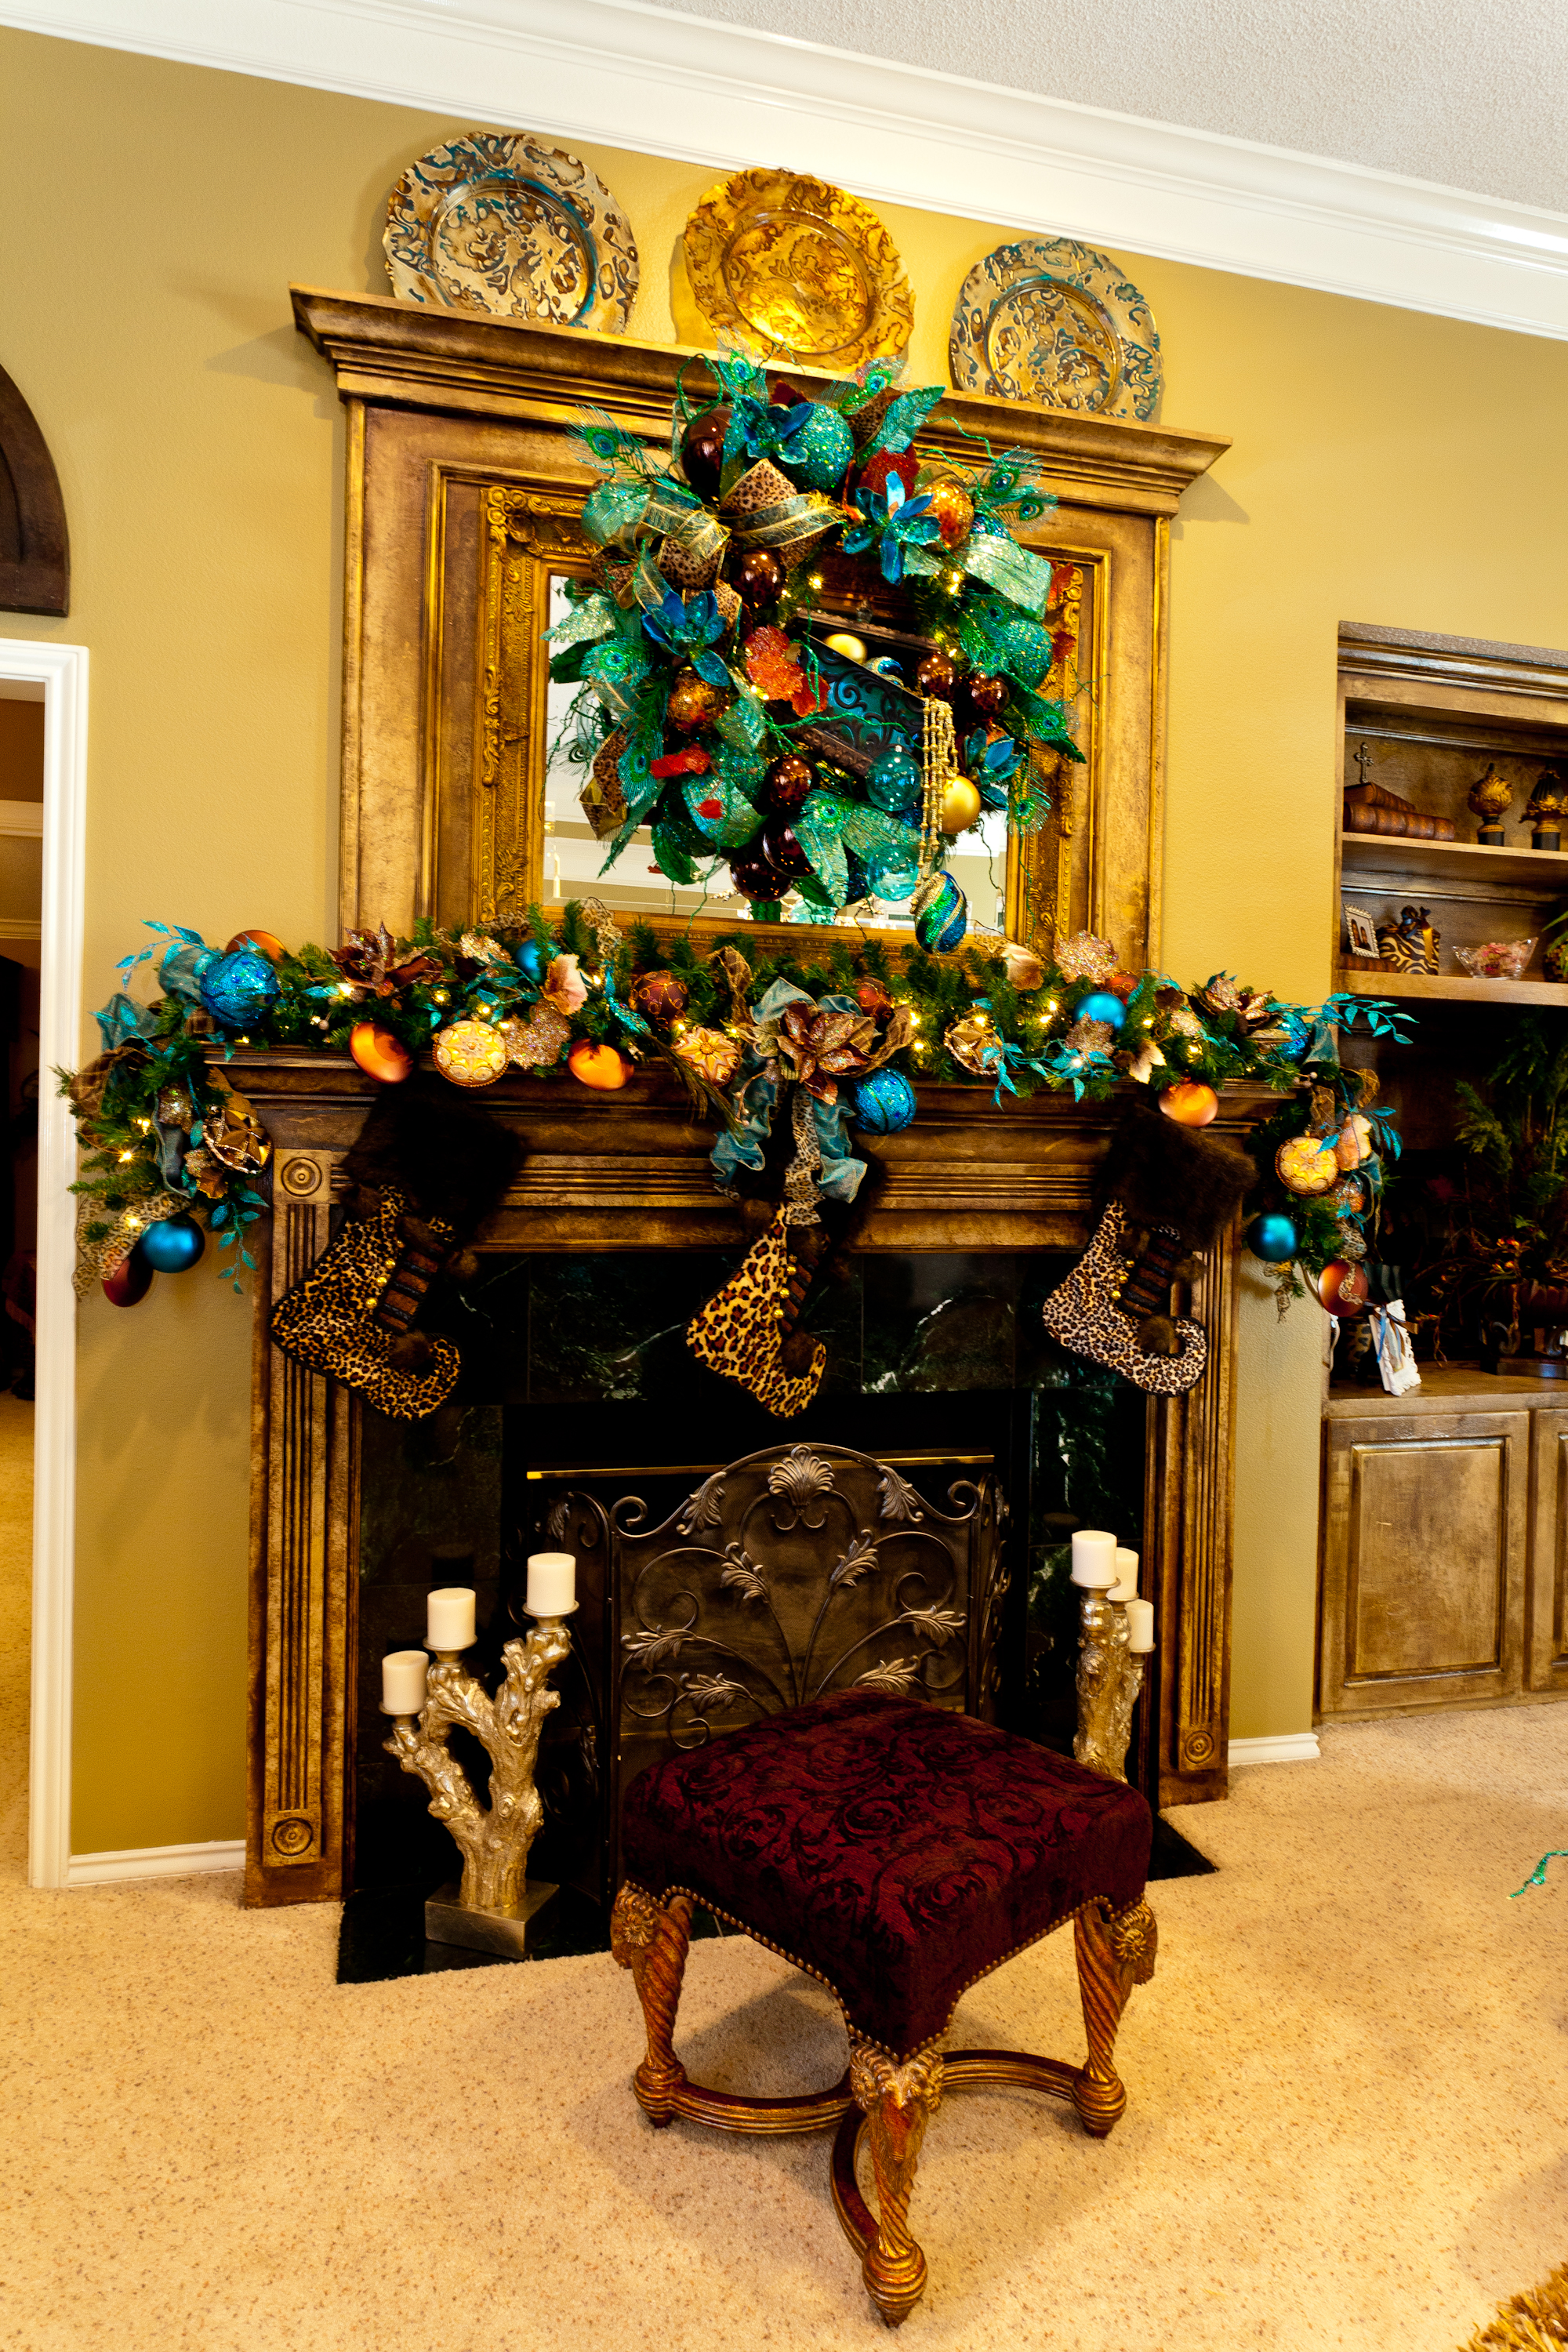 Show Me a Home dressed in Peacock! | Show Me Decorating